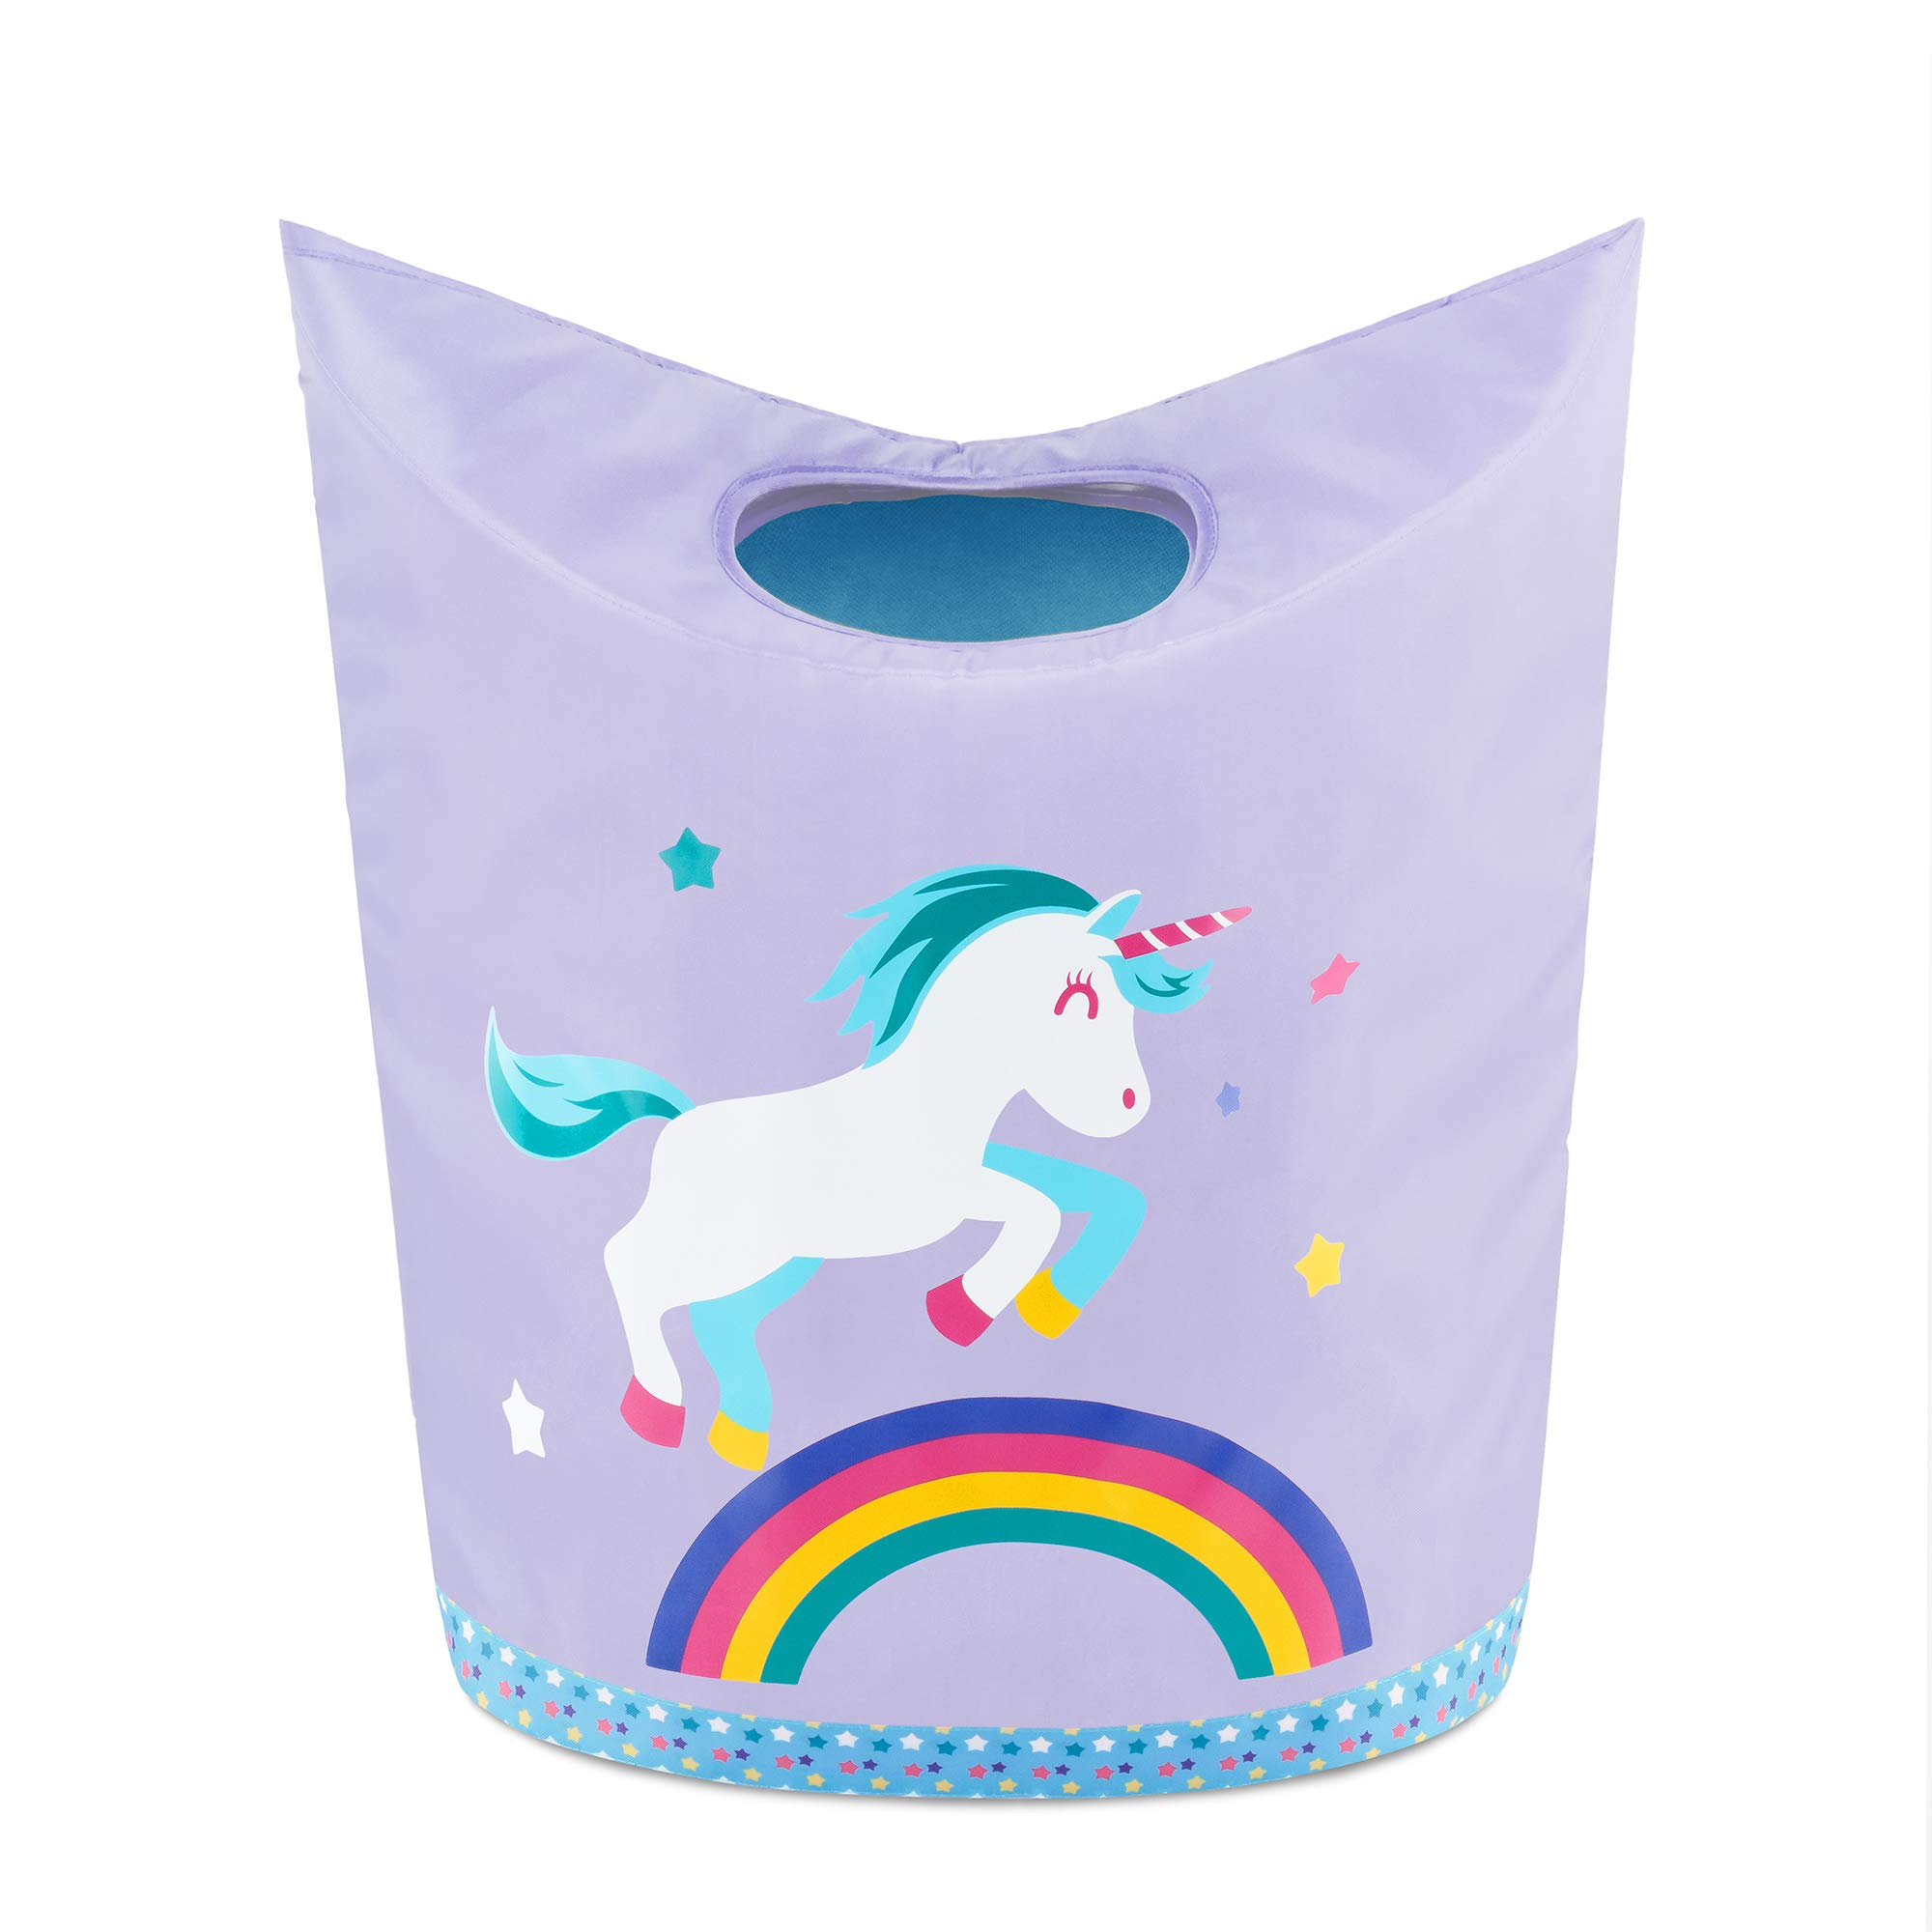 KMD Kids Laundry Hamper, Collapsible Dirty Clothes Basket, Pop Up Bin for Baby, Nursery, Boys and Girls Bedroom Decor (Unicorn) by KMD Kids